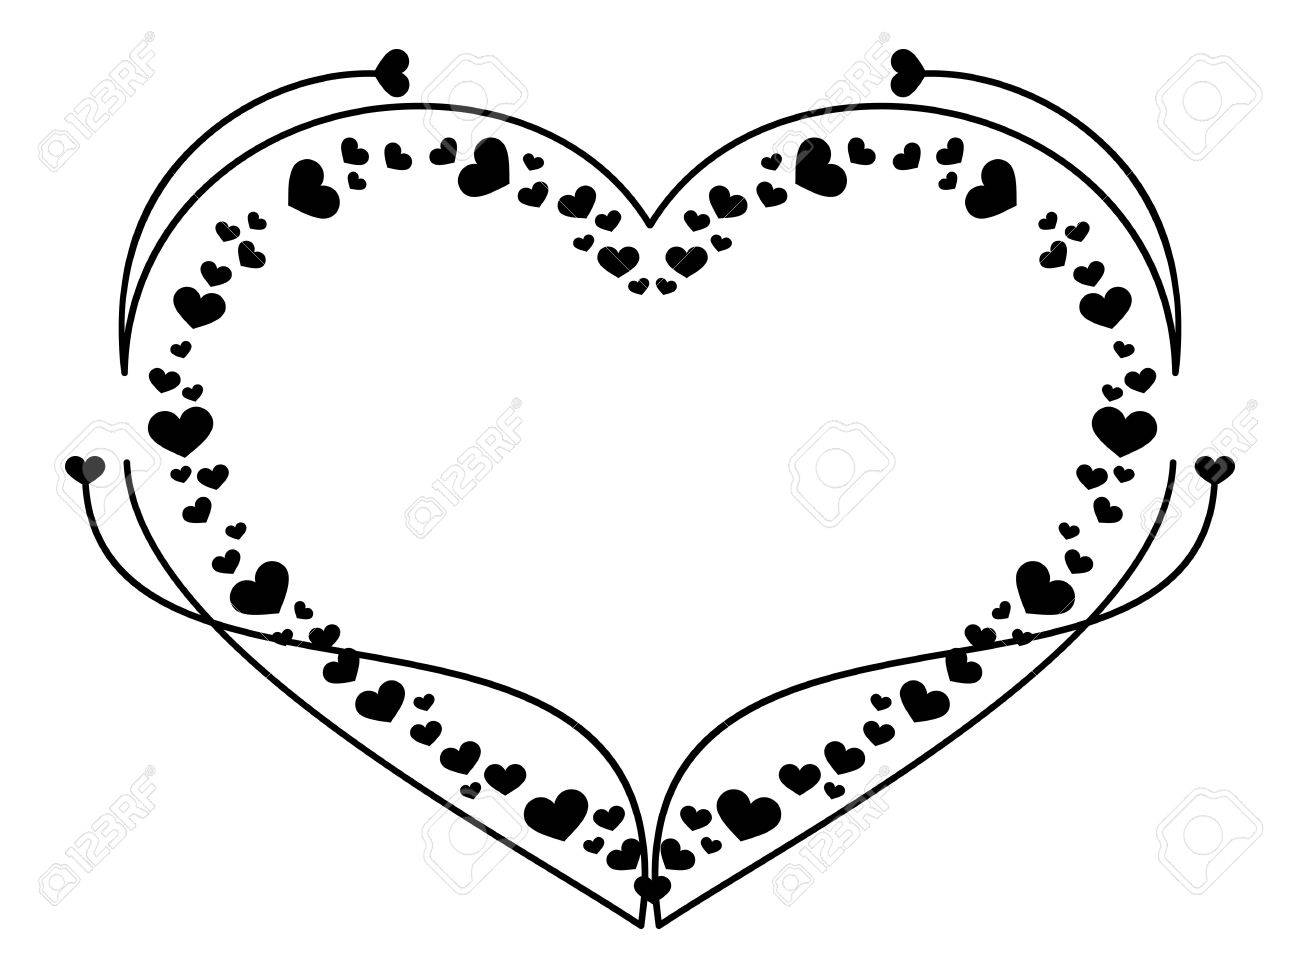 Heart Shaped Frame Royalty Free Cliparts, Vectors, And Stock ...